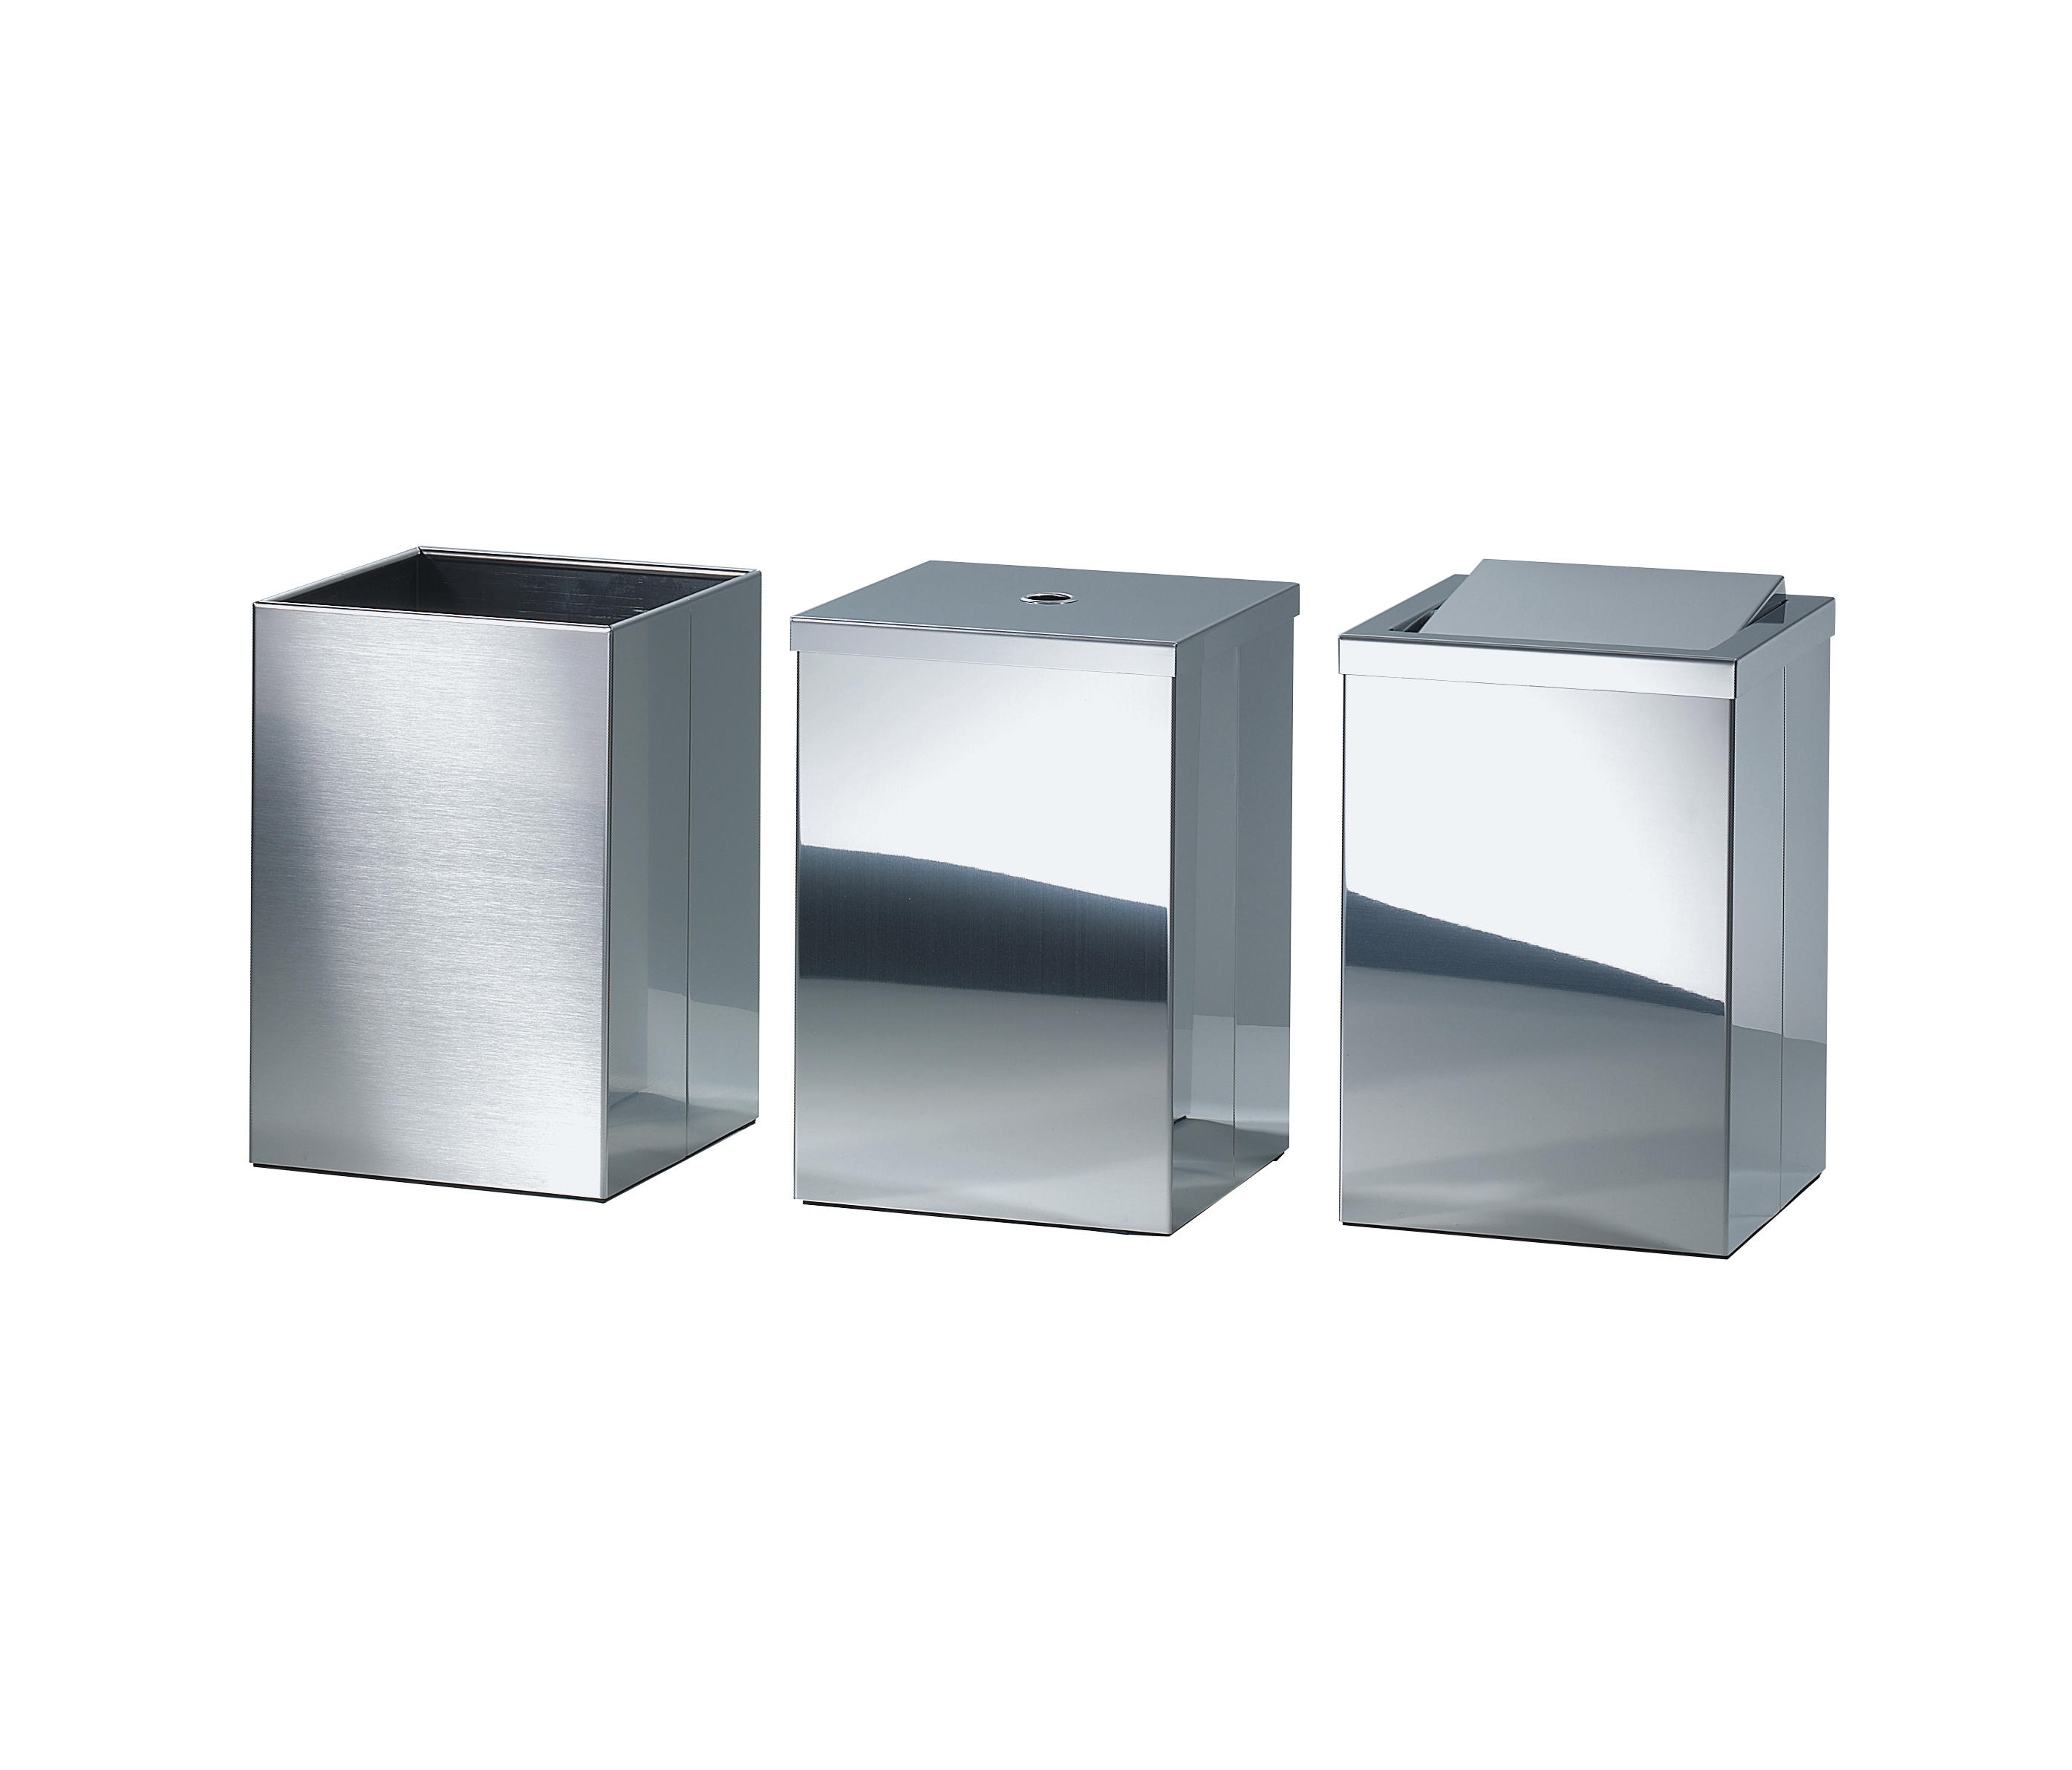 Decor Walther Dw 111 112 113 Waste Baskets From Decor Walther